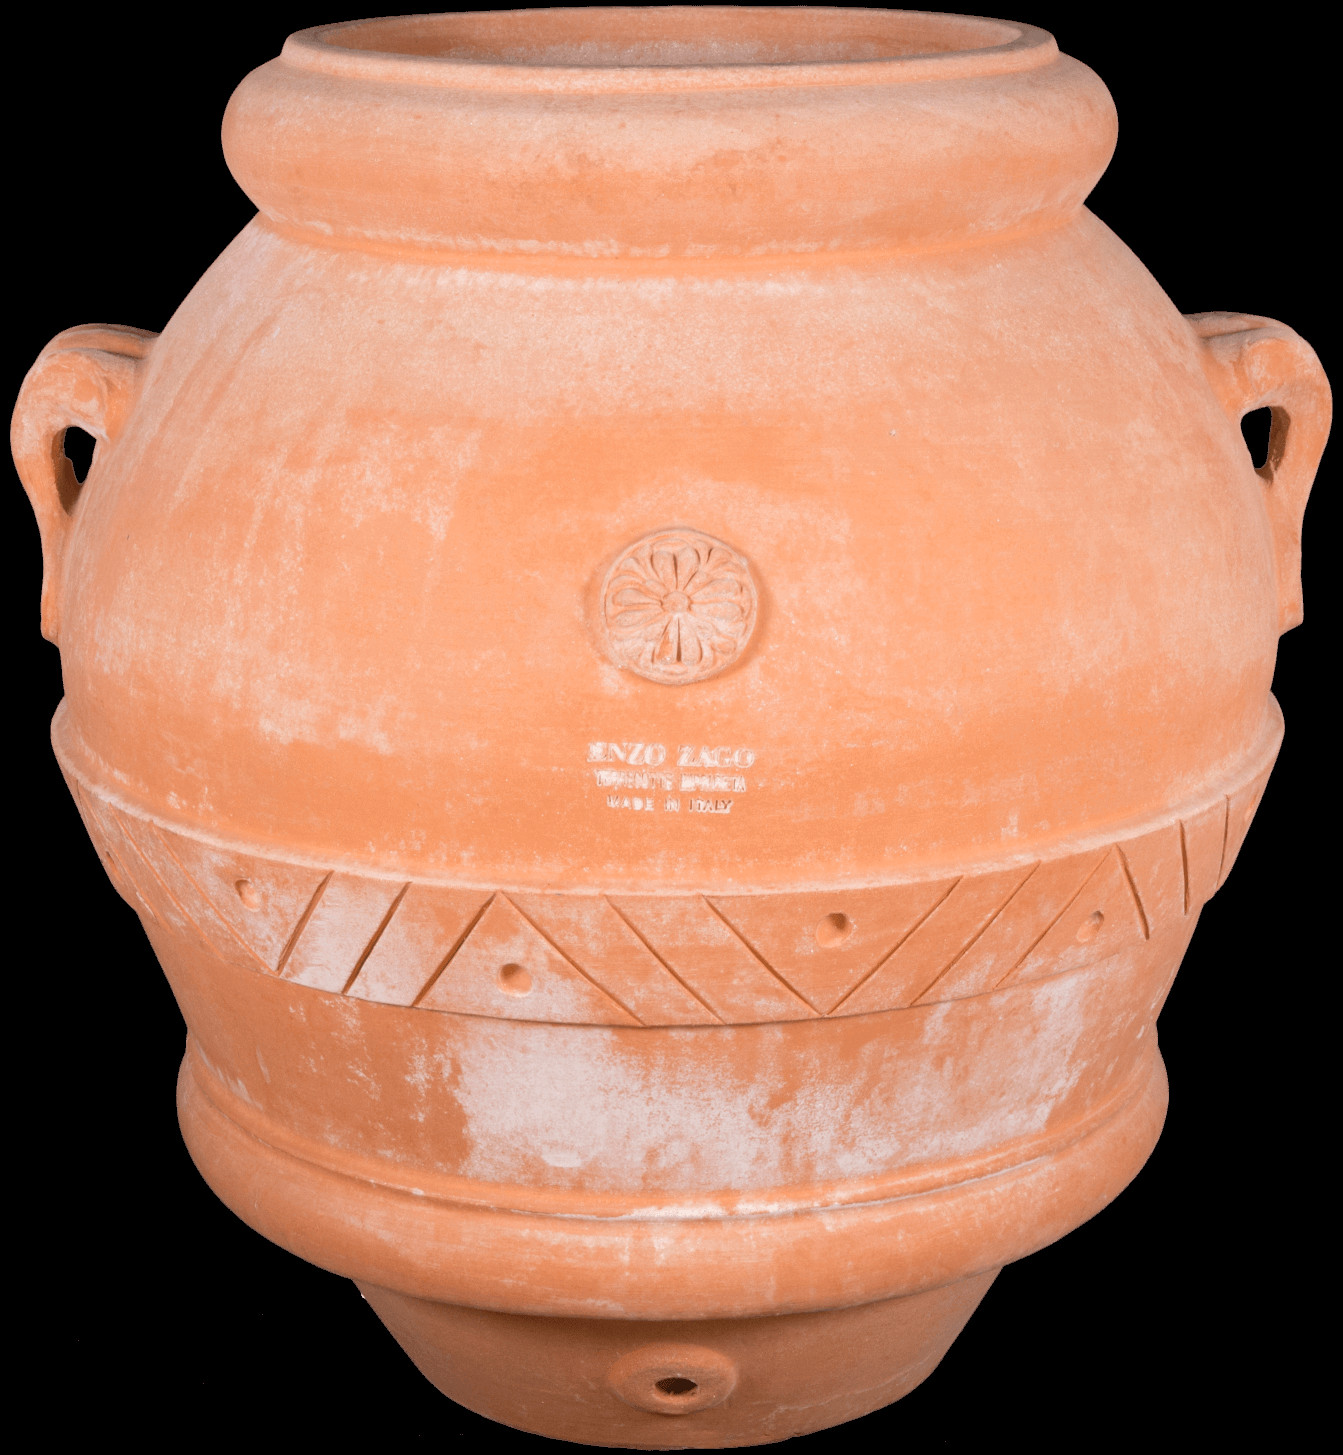 large outdoor pottery vases of terracotta urns orci jars from impruneta tuscan imports within 126 medium